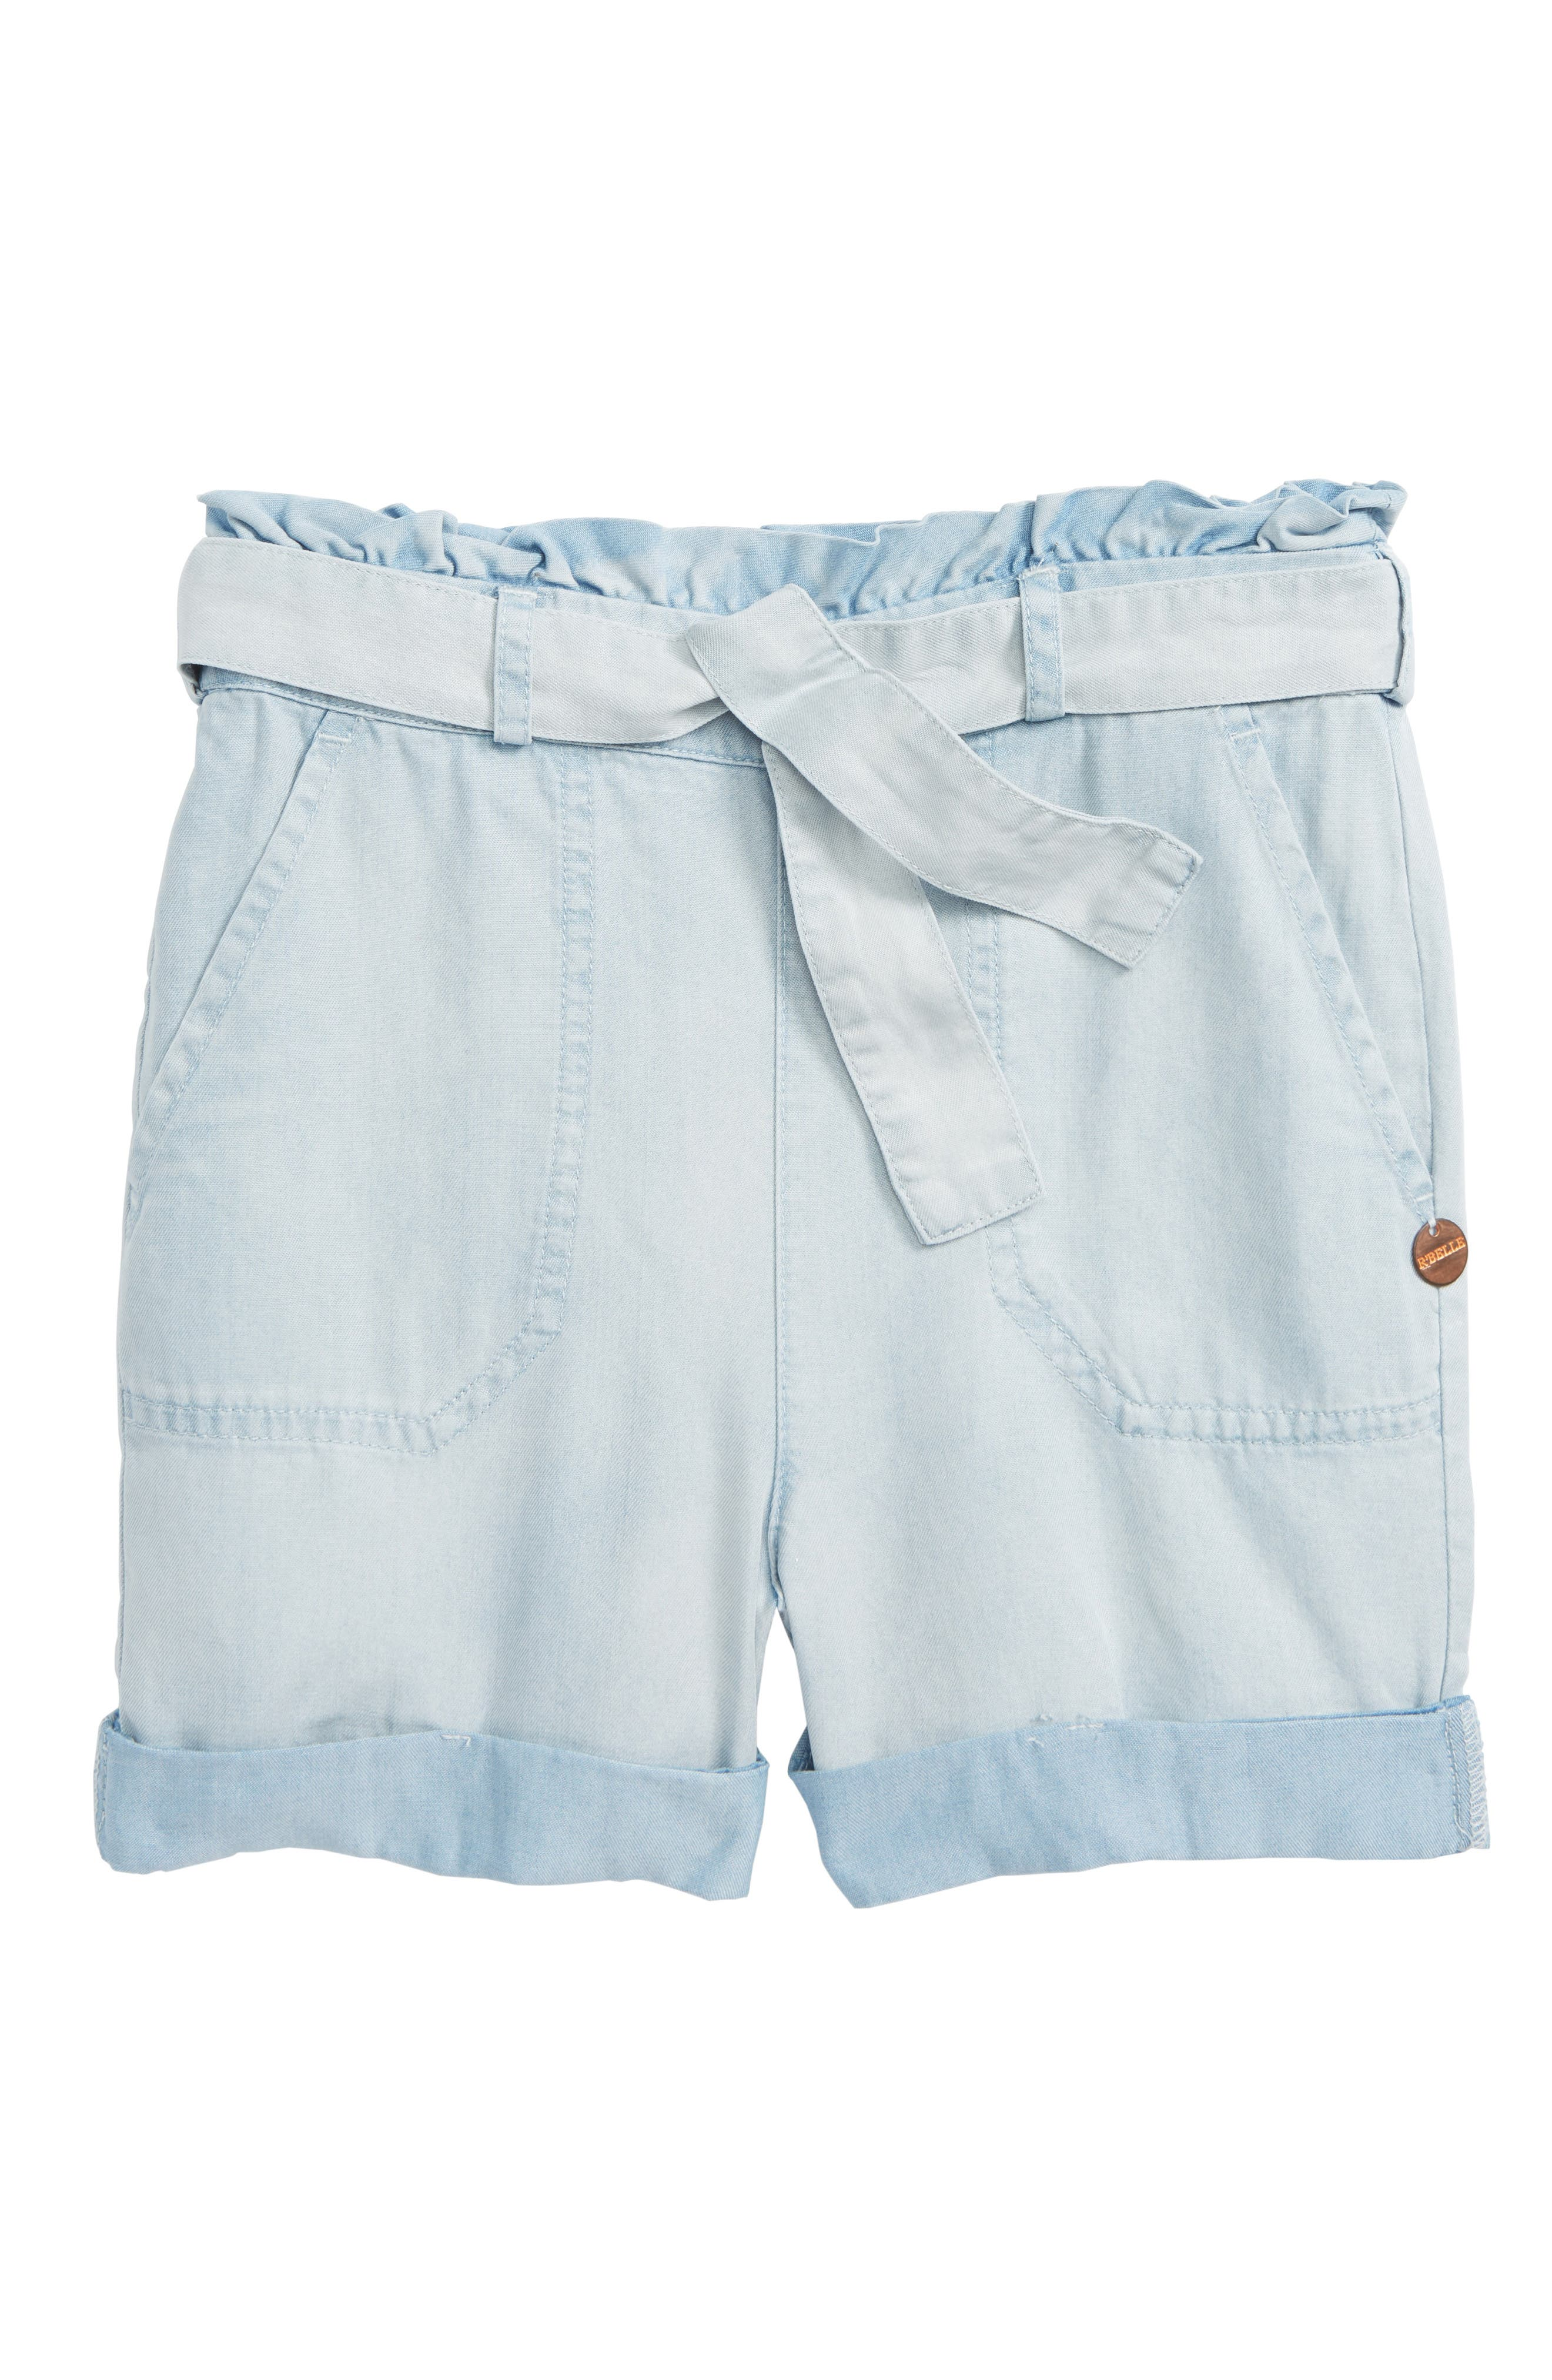 Scotch R'Belle Chambray Shorts,                             Main thumbnail 1, color,                             400